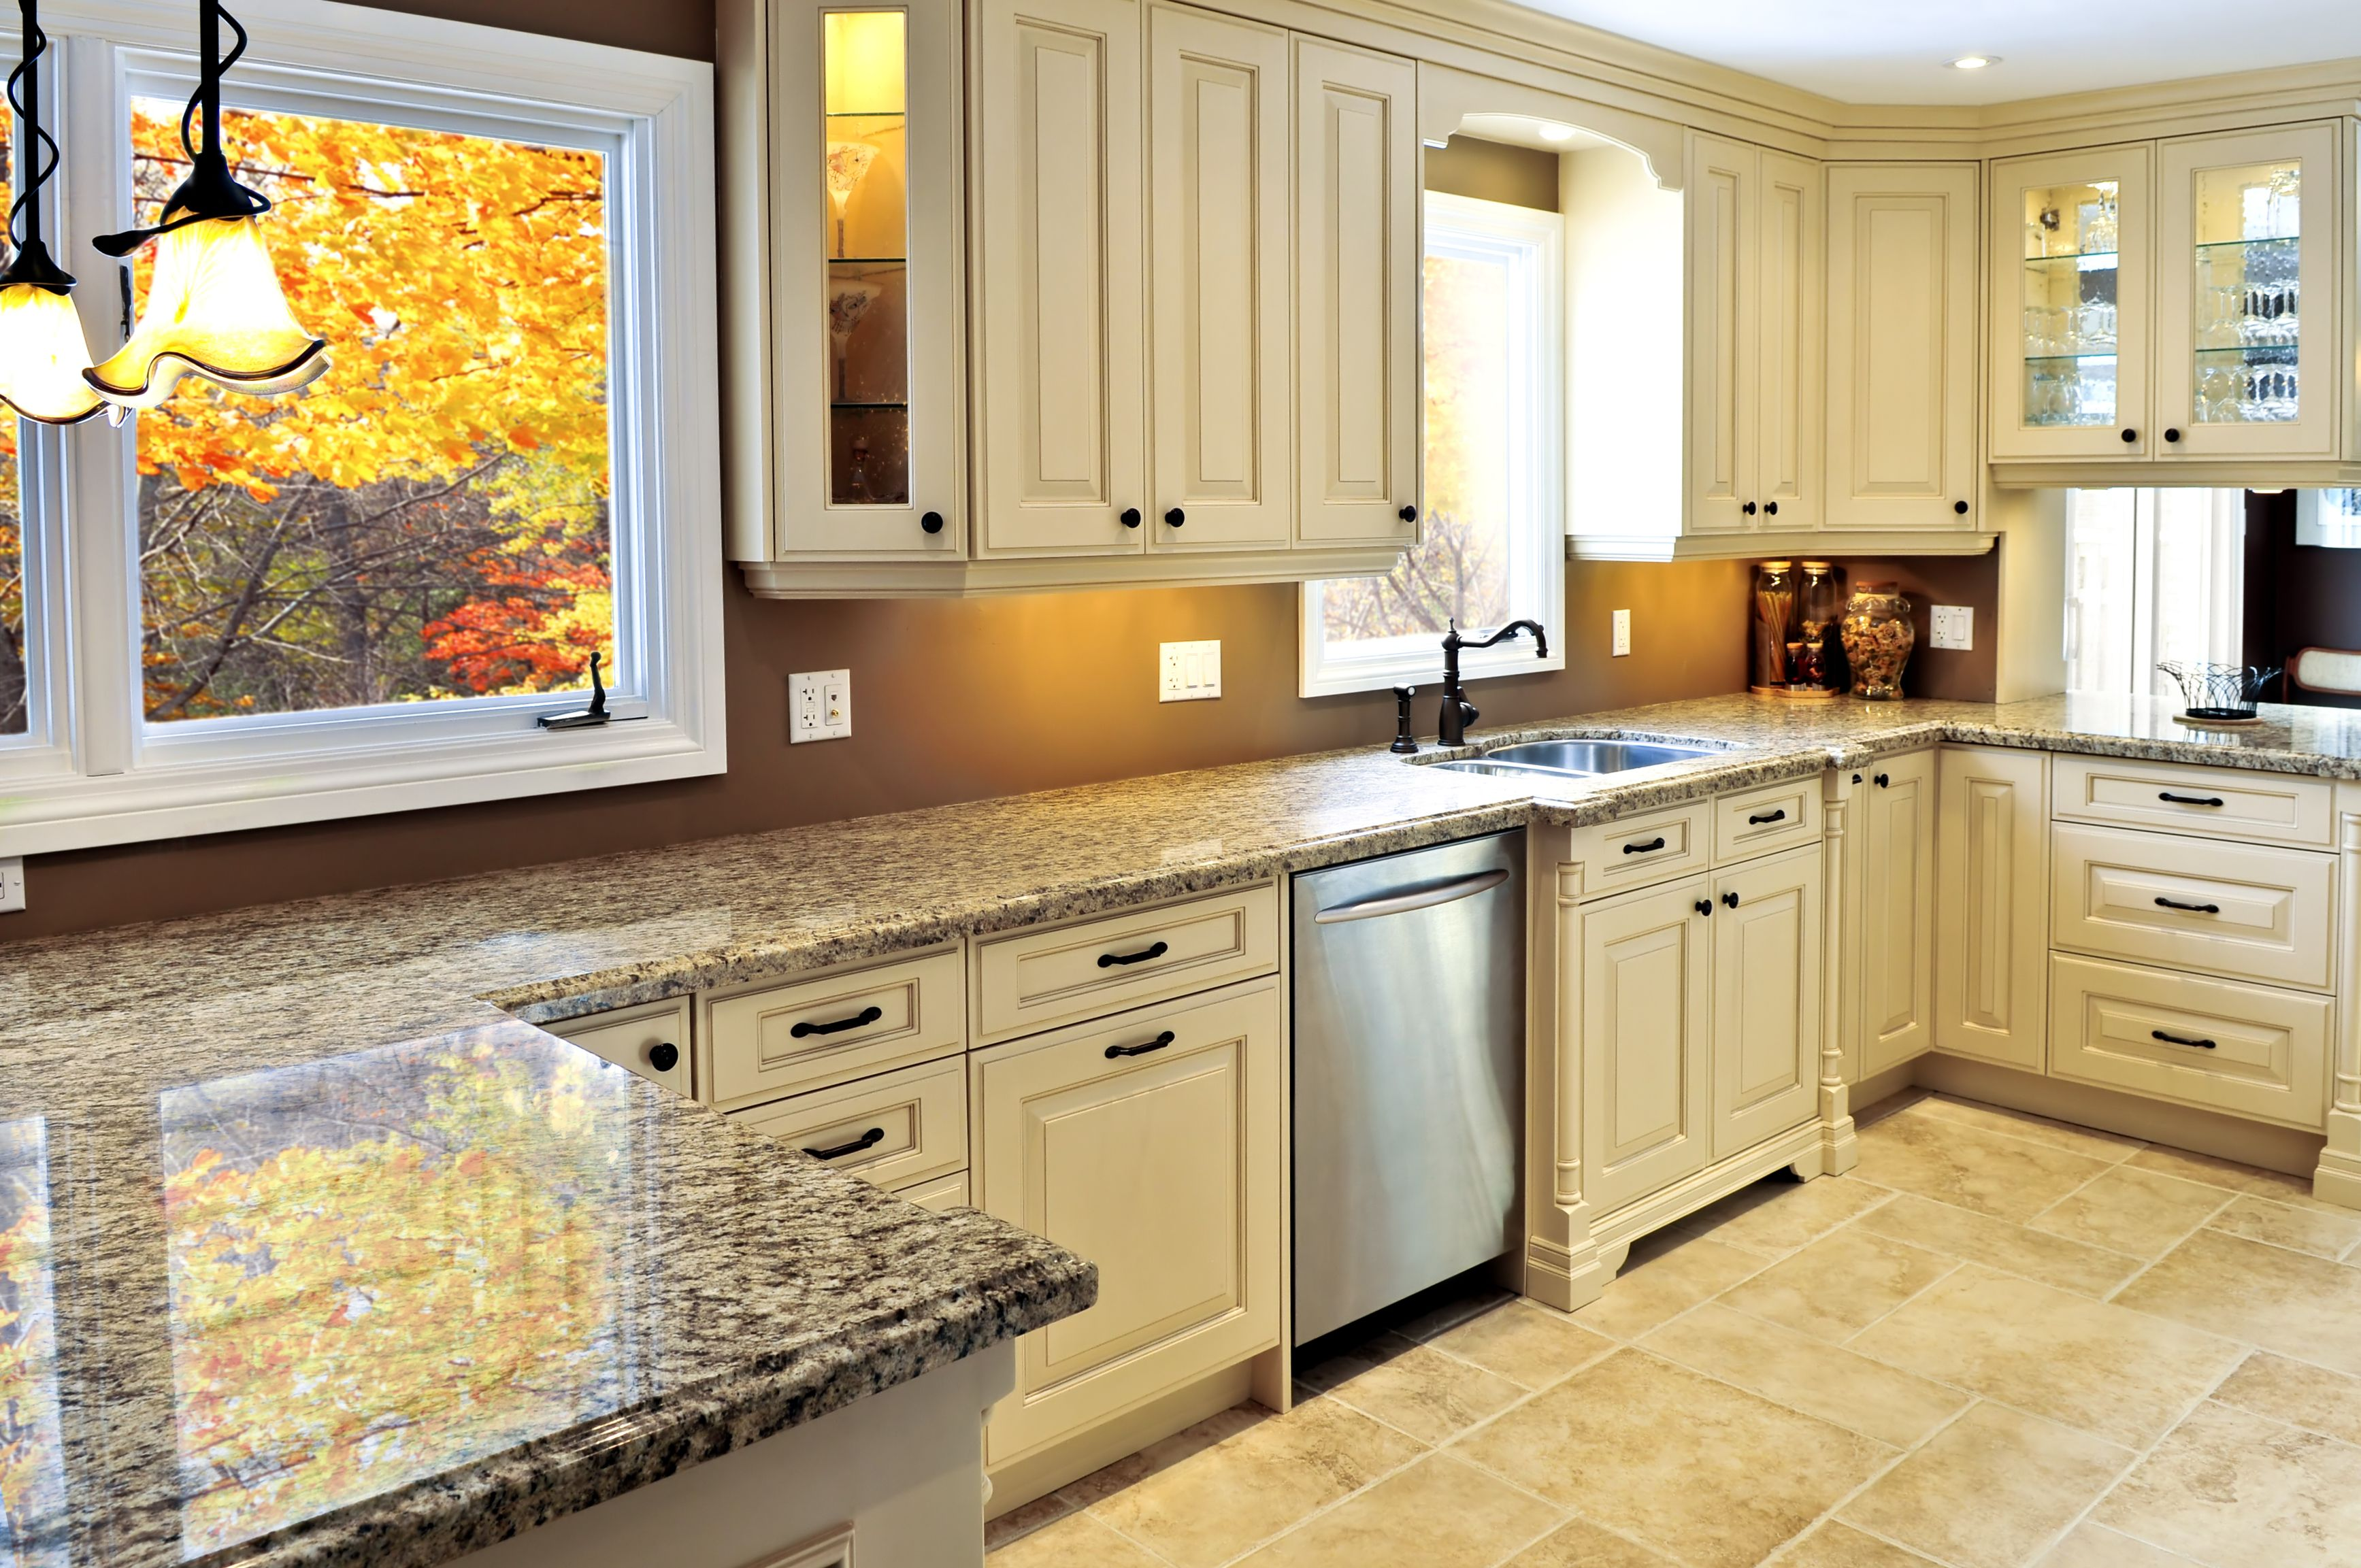 Antique Almond Cabinets With Granite Counter Top For More Information Visit Our Site Www Amaz Modern Kitchen Interiors Kitchen Remodel Small Kitchen Remodel